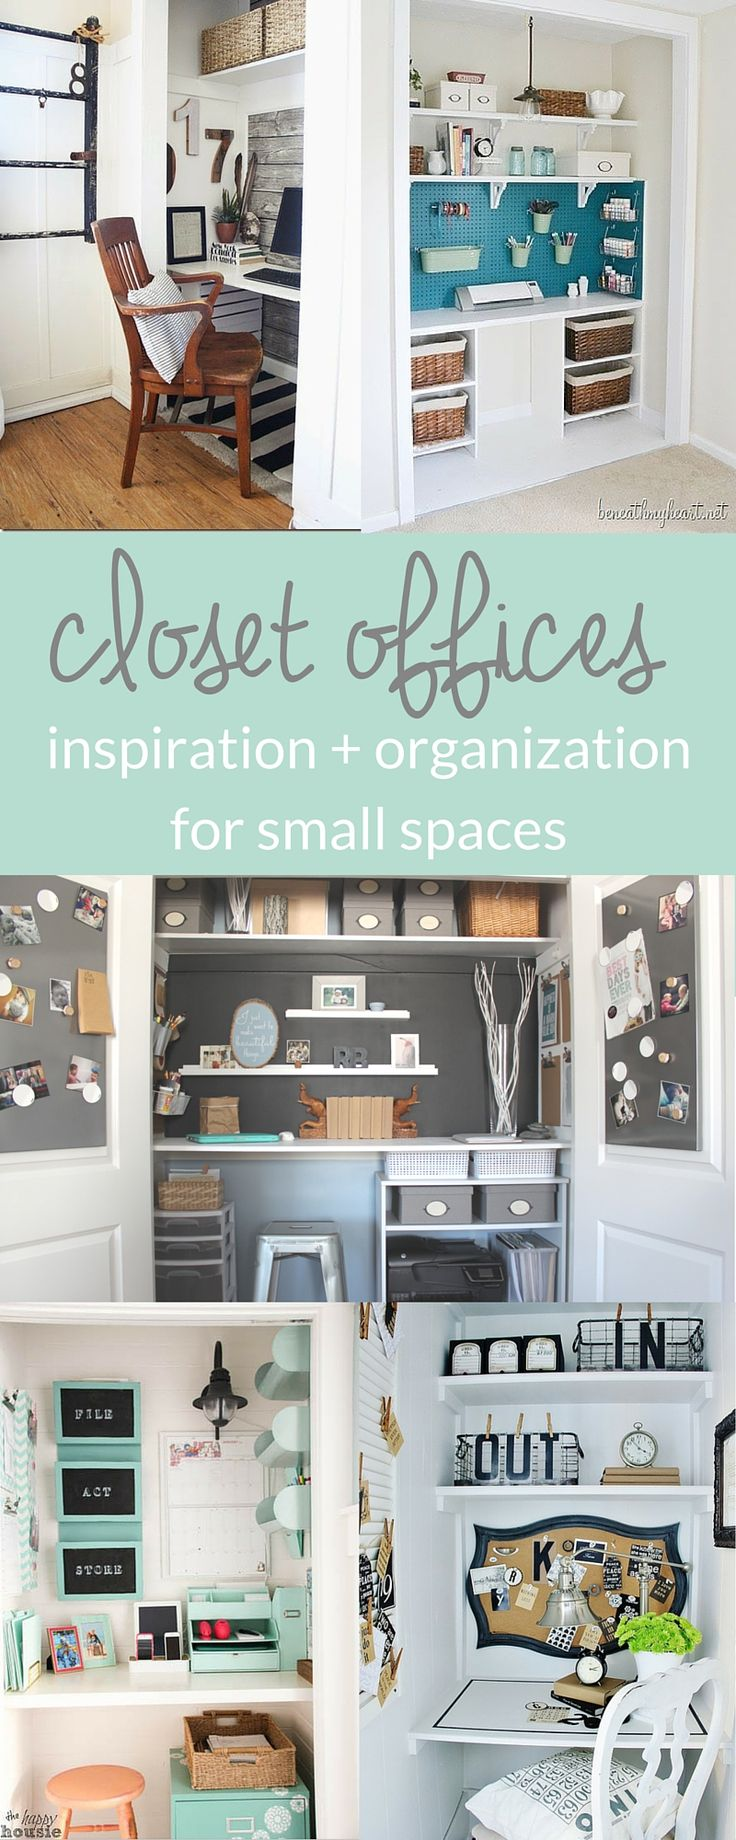 Closet Offices - Inspiration and Organization for Small Spaces. Check out these 8 small space solutions for home offices or craft rooms